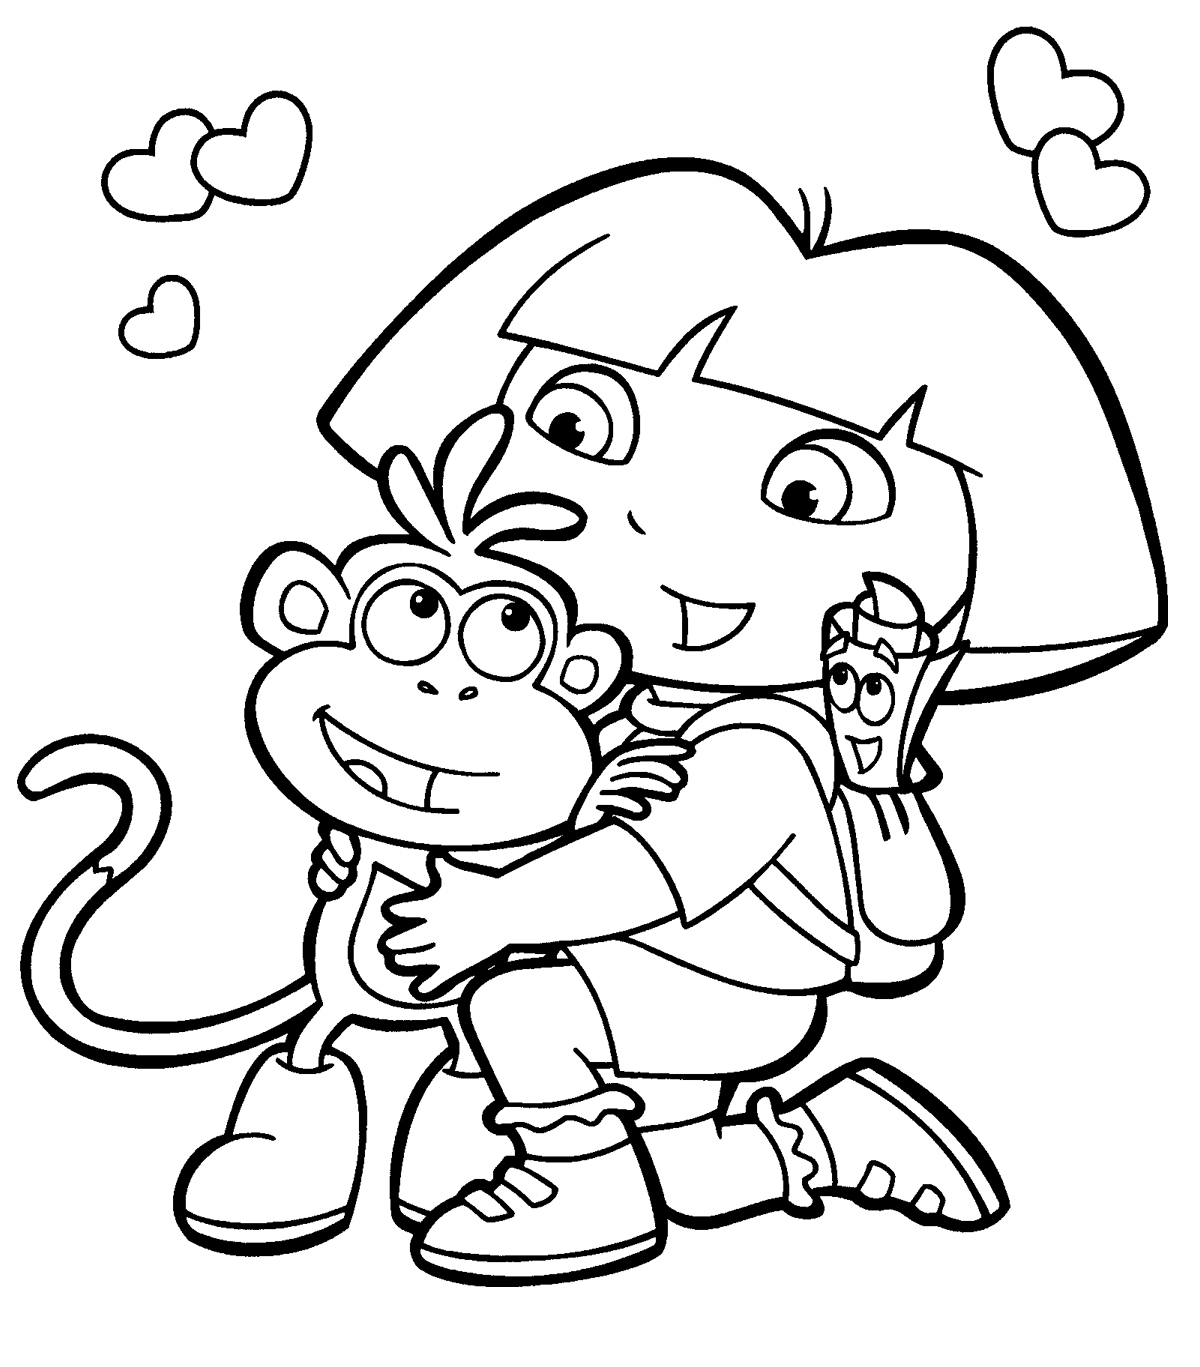 download dora the explorer coloring pages 15 print - Dora The Explorer Pictures To Color And Print